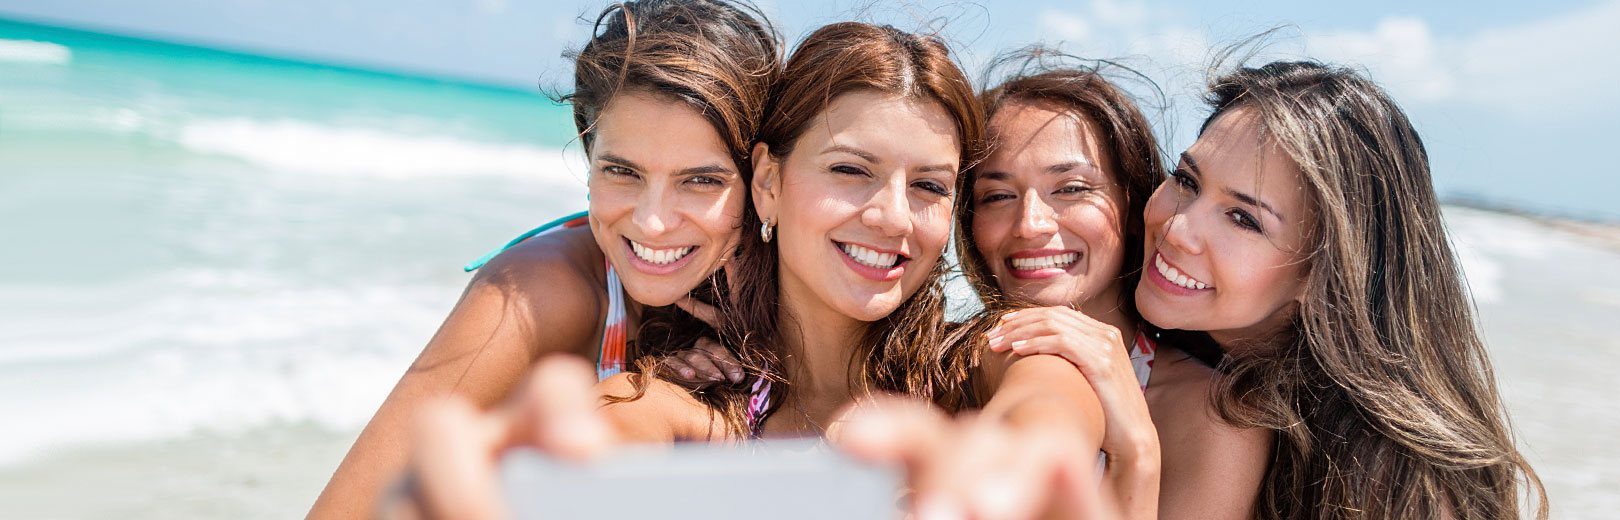 Girls smiling and taking a photo on the beach